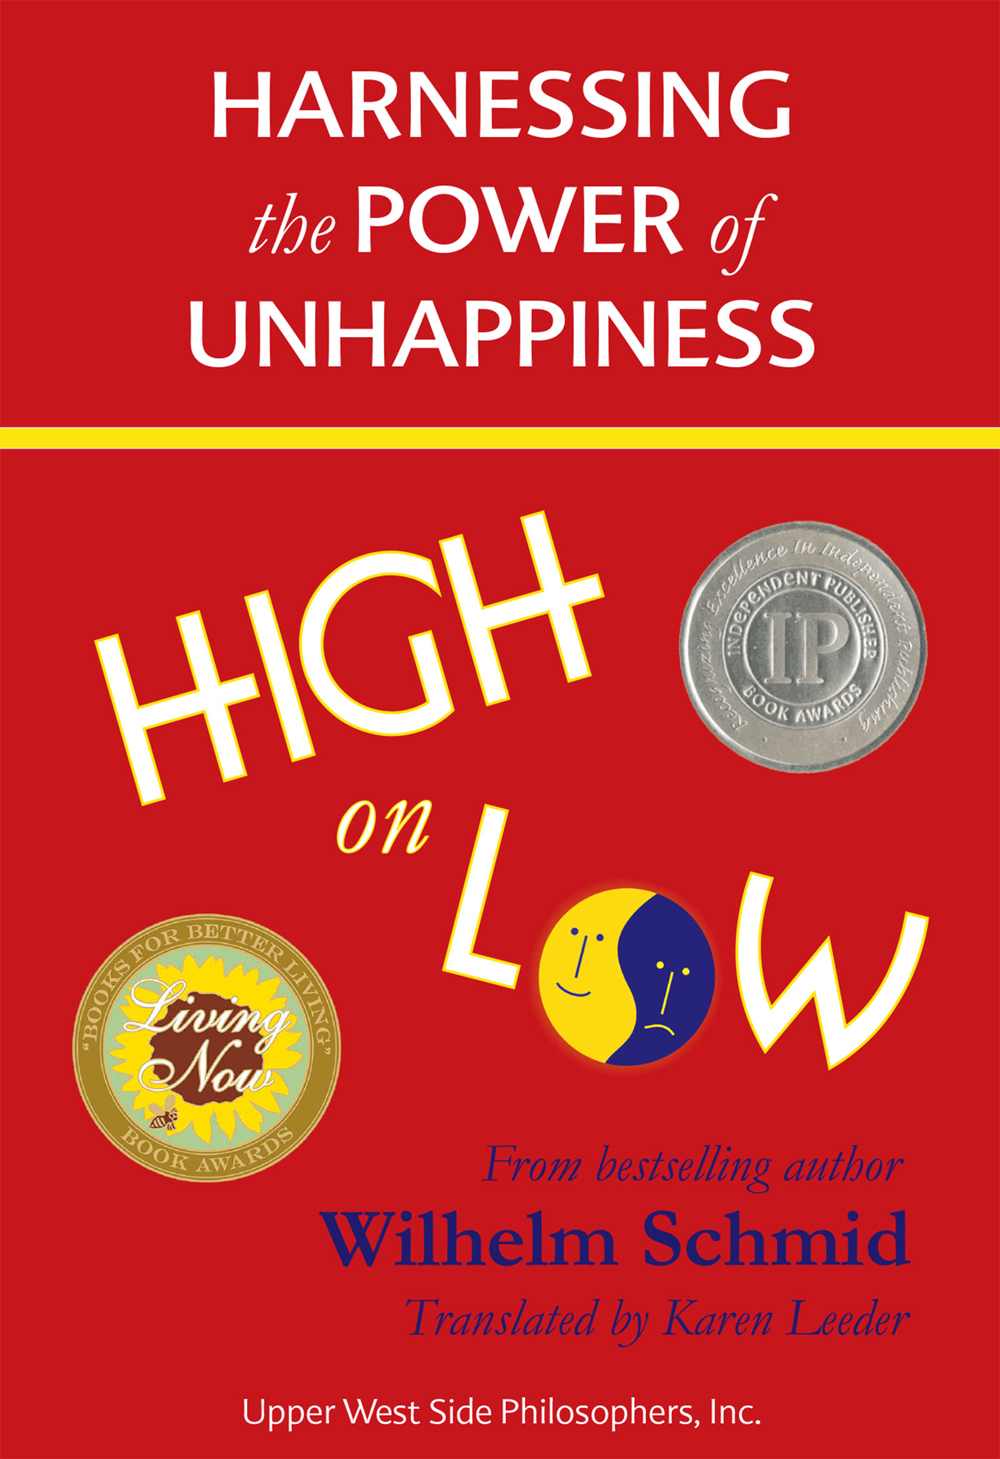 high on low: harnessing the power of unhappiness | wilhelm schmid | upper west side philosophers, inc